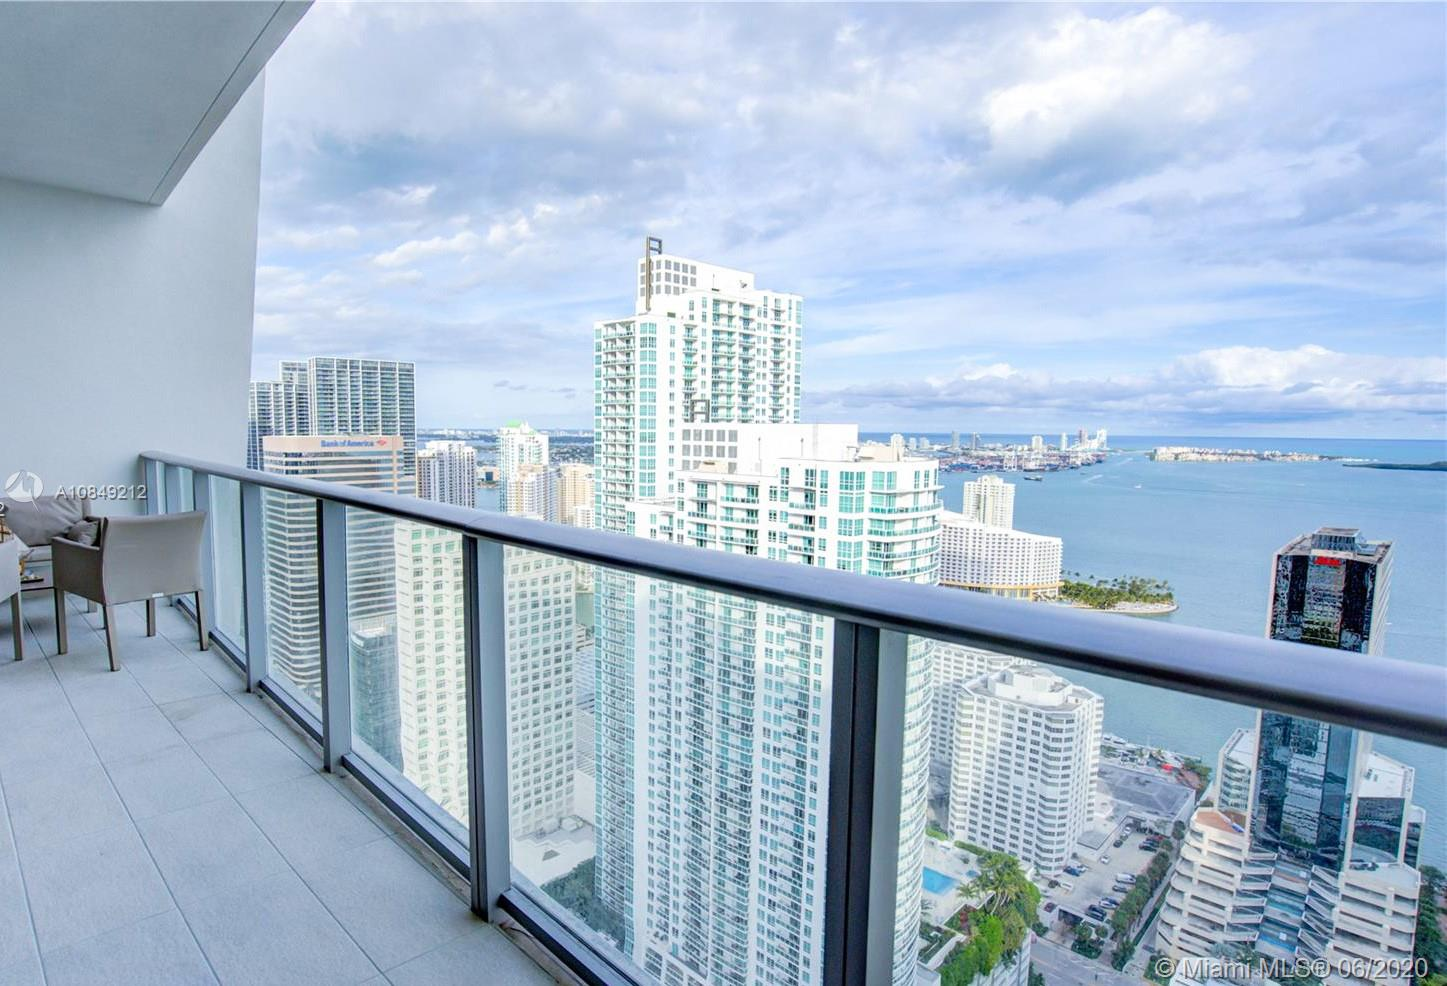 Wonderful unit in the heart of Brickell! 2 BED/3 BATHS + DEN that can easily convert in 3rd bedroom. Privet direct elevator. Marble floors, custom made closets, open kitchen with top of the line appliances. Ocean and Skylines view. 1 assigned parking space and valet parking. Gorgeous amenities, Rooftop Pool deck in 50th floor, Movie Theater, BBQ Area, Cabanas, Spa with Steam bath, Sauna, Indoor Pool, Gym, Aerobics Room, Great Children Play Area, Basketball Court, Squash Court, Party Room , Running Track, Mini Soccer and much more/